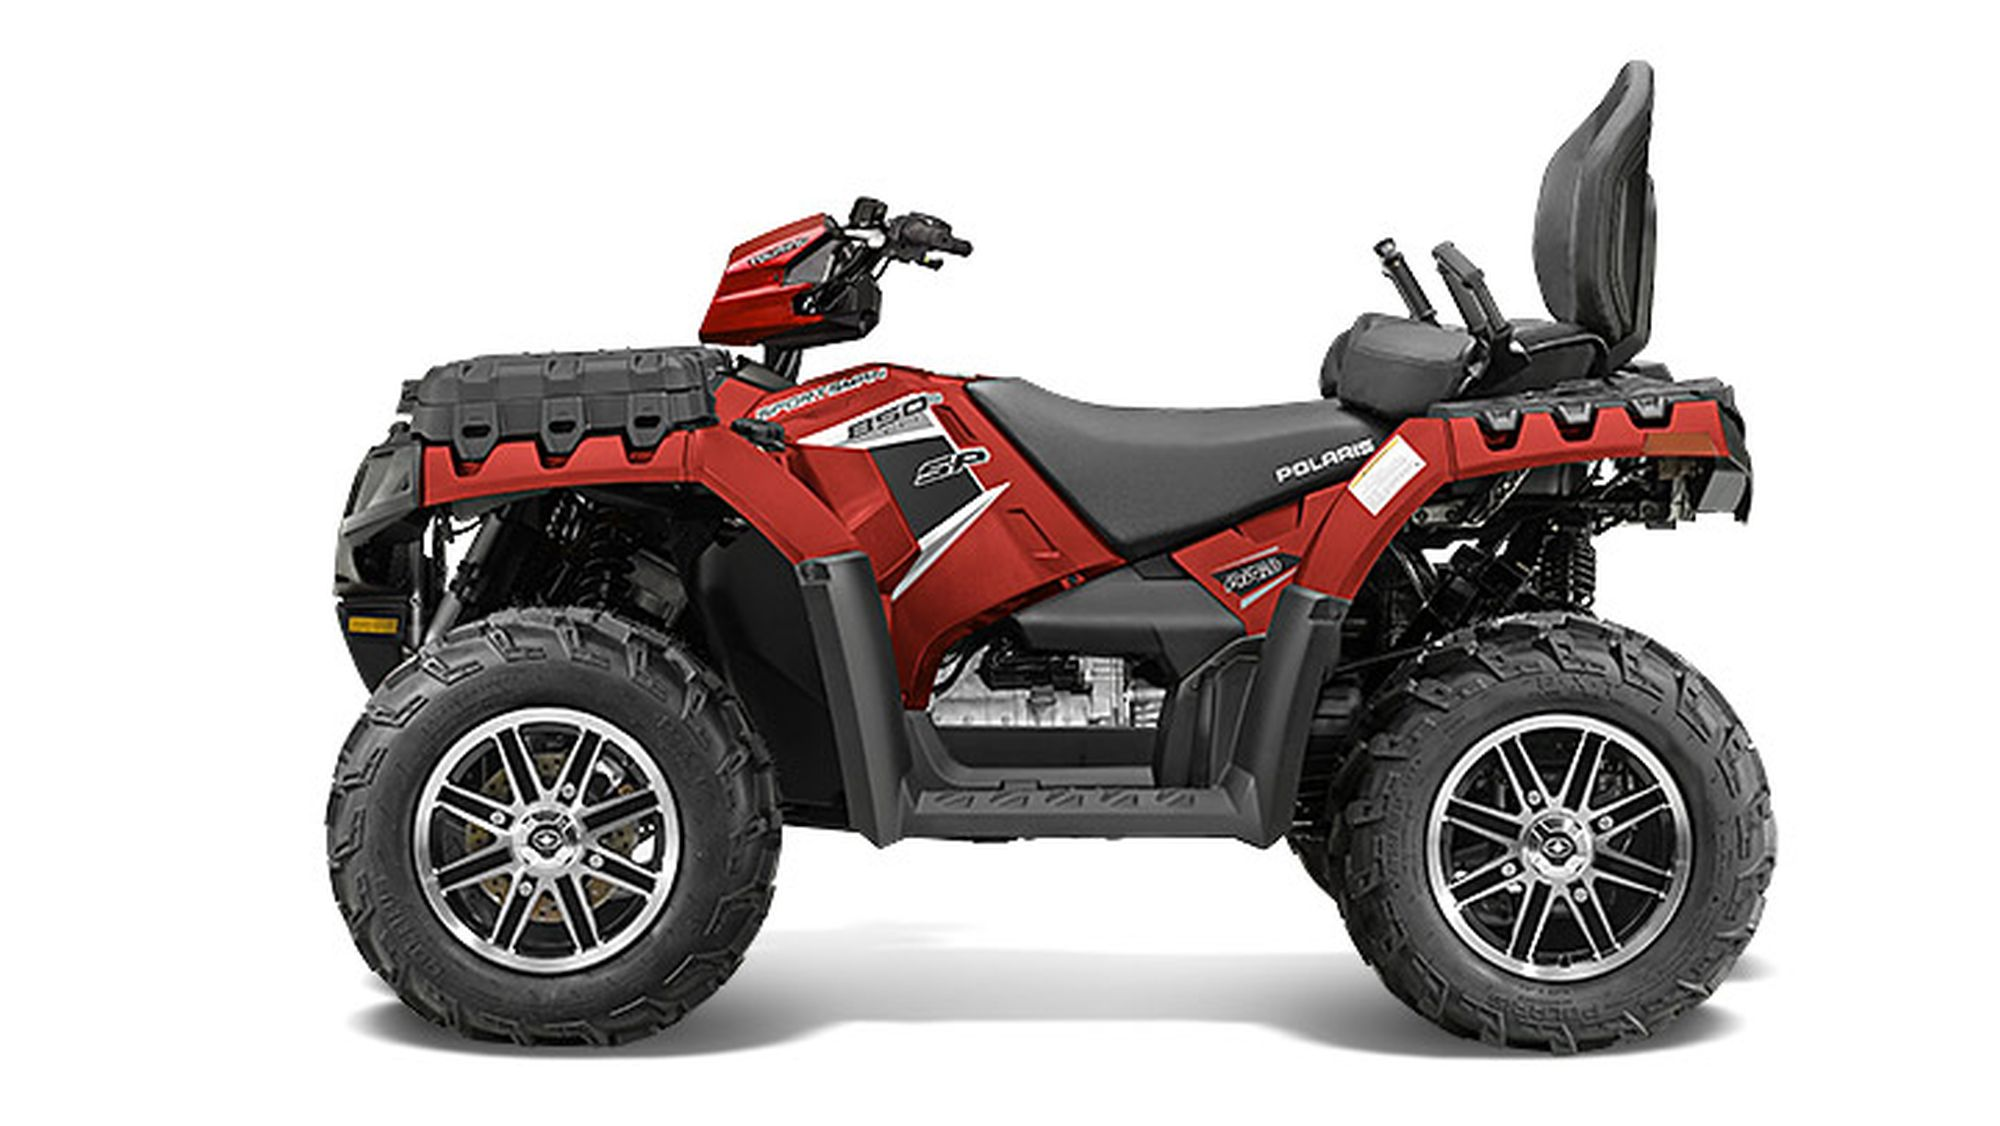 polaris sportsman 850 touring eps bilder und technische. Black Bedroom Furniture Sets. Home Design Ideas